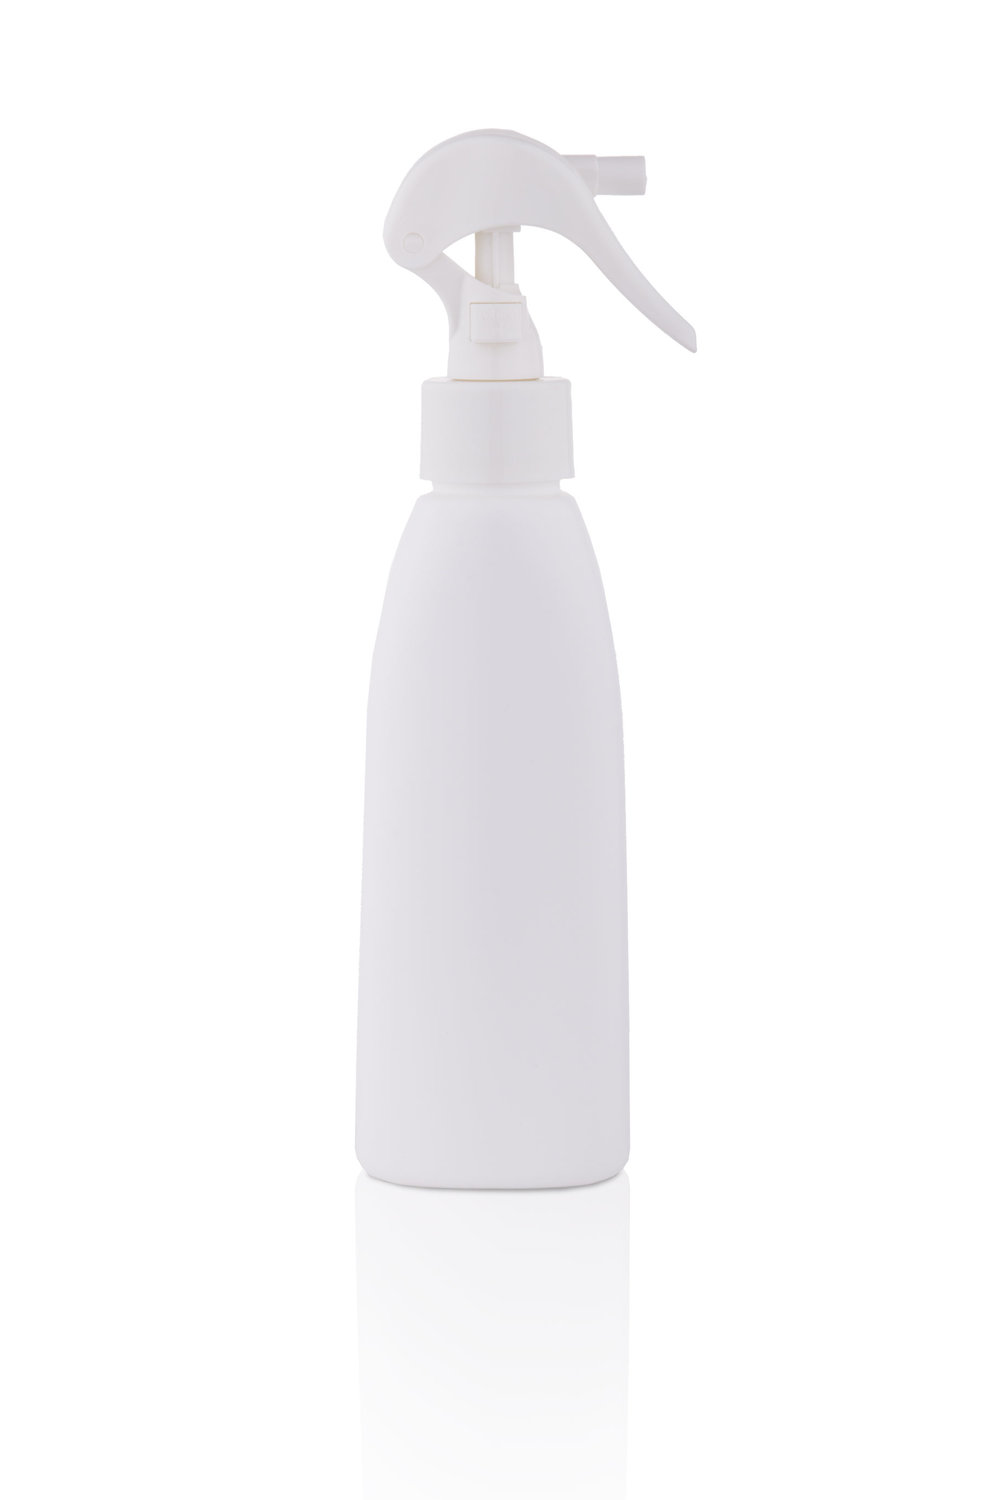 Northwest-Cosmetic-Labs_spraybottle.jpg